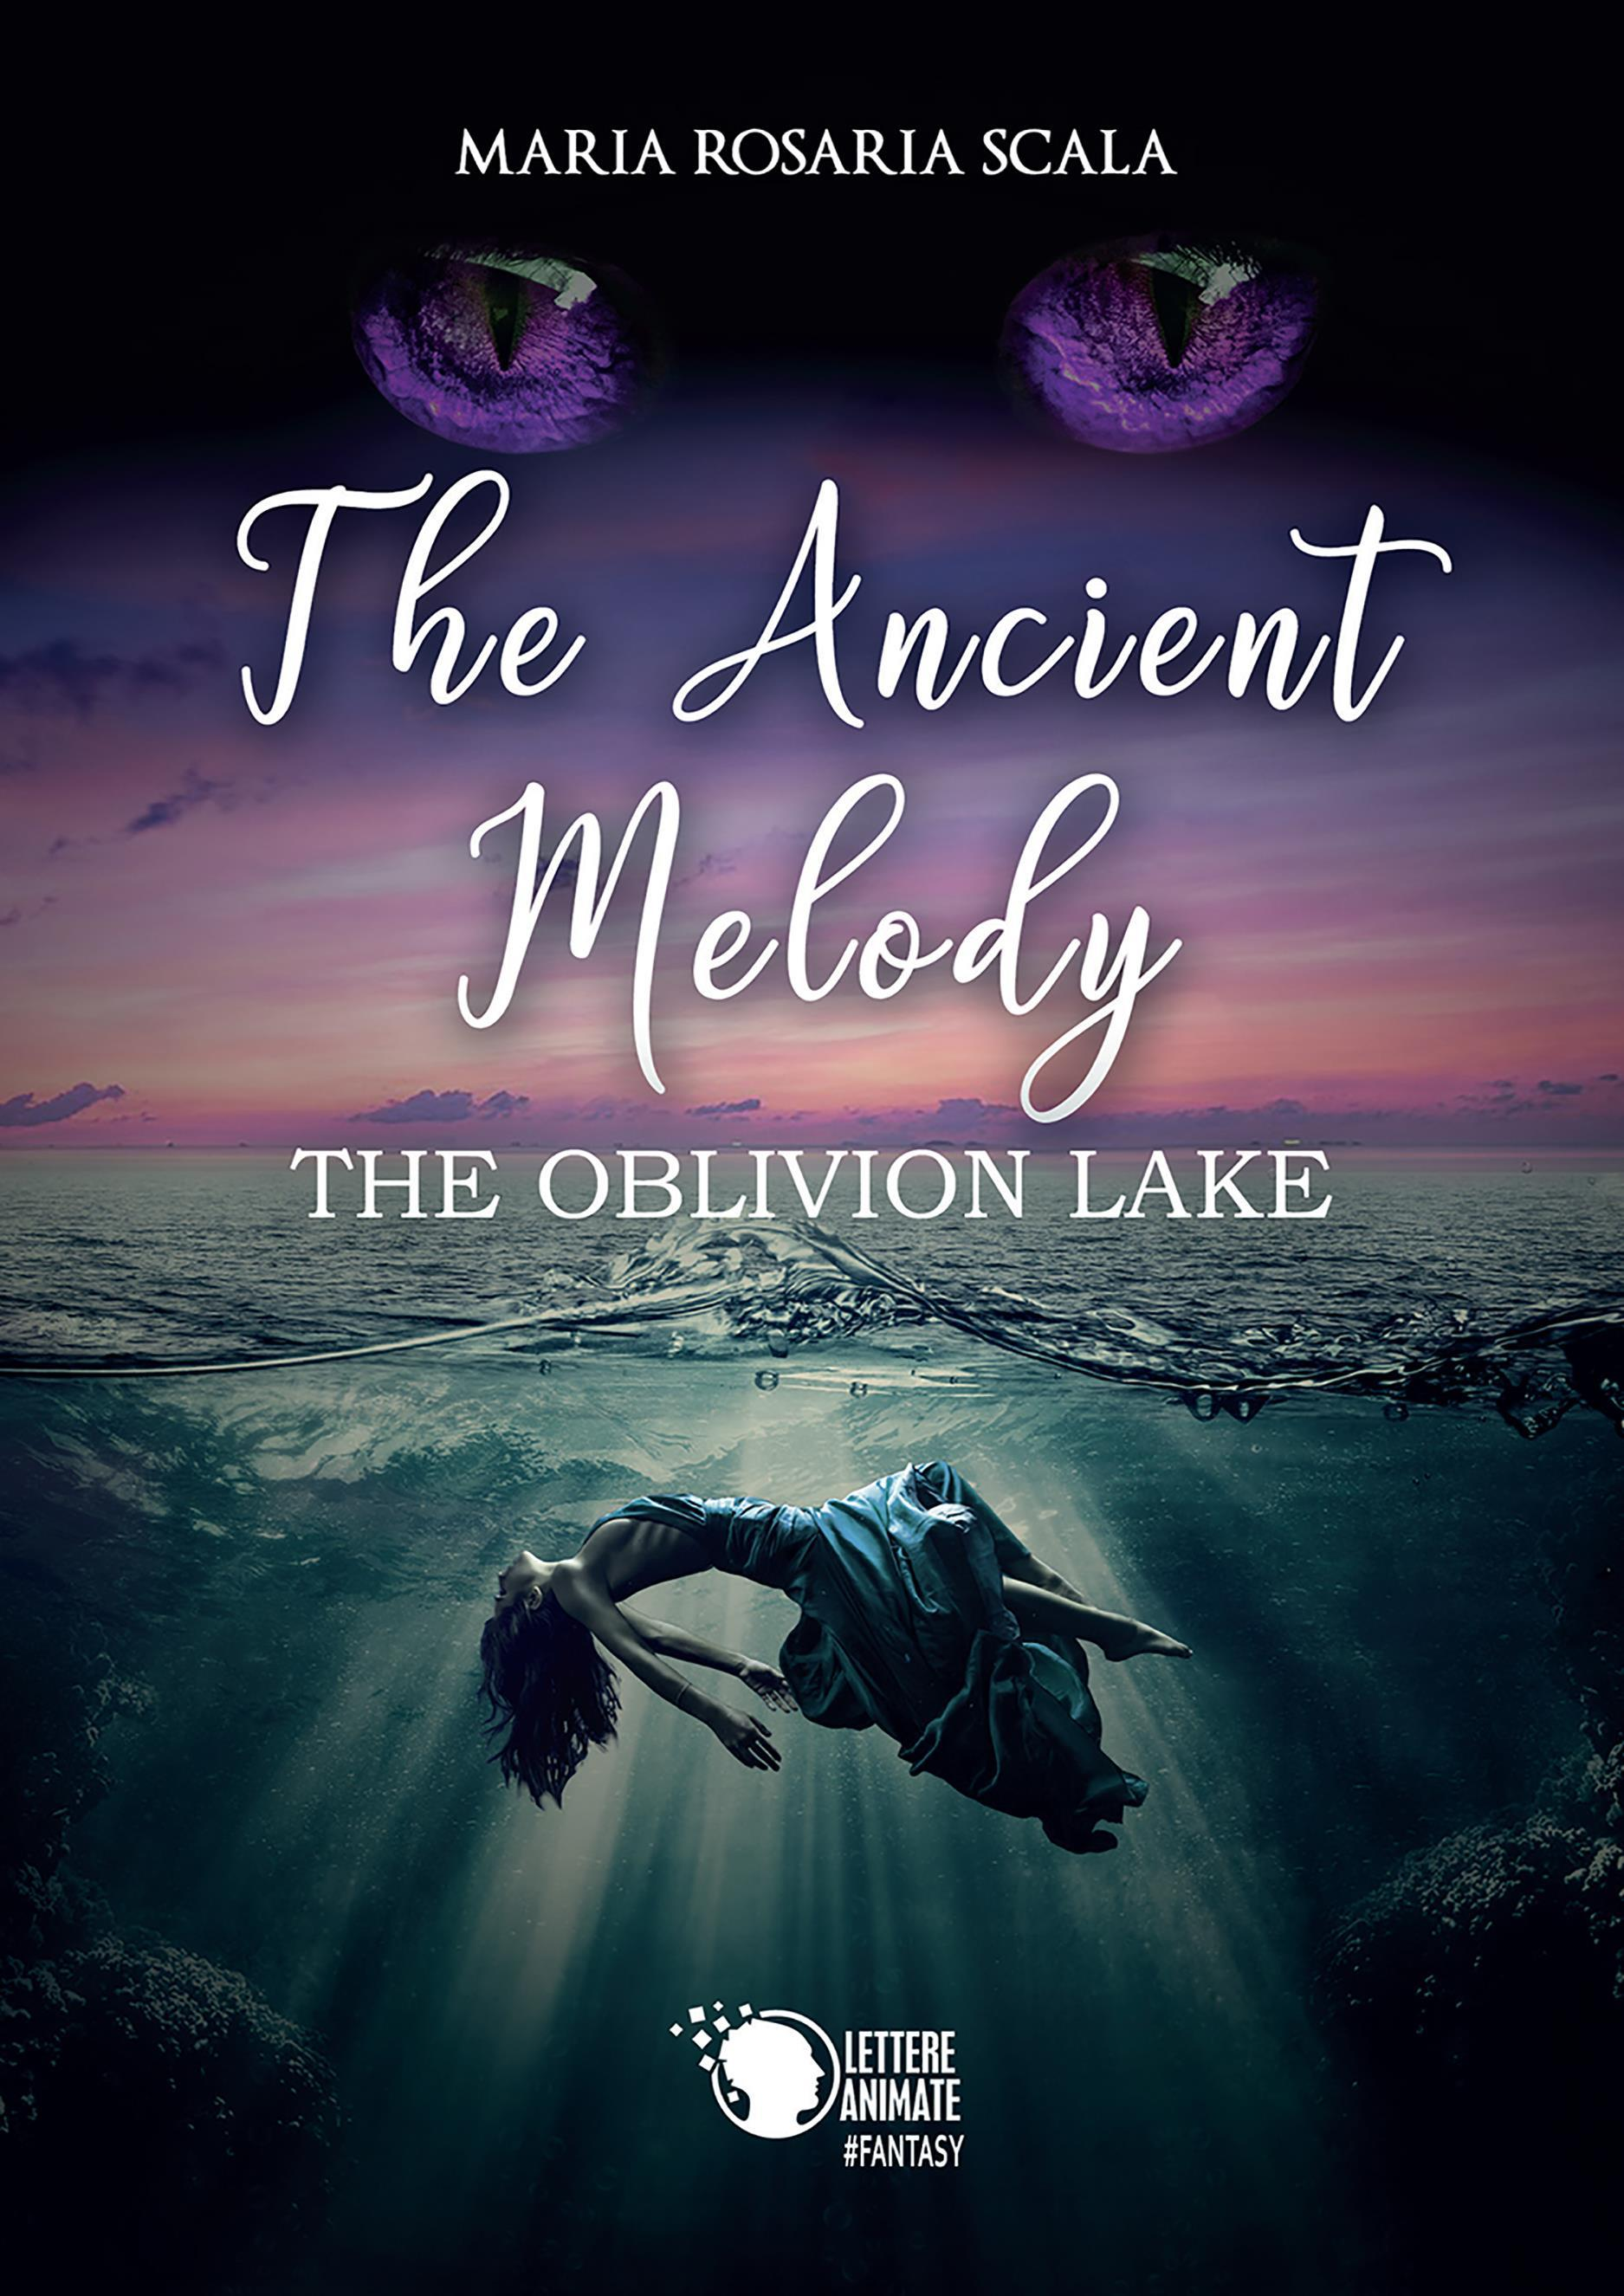 The Ancient Melody - The Oblivion Lake